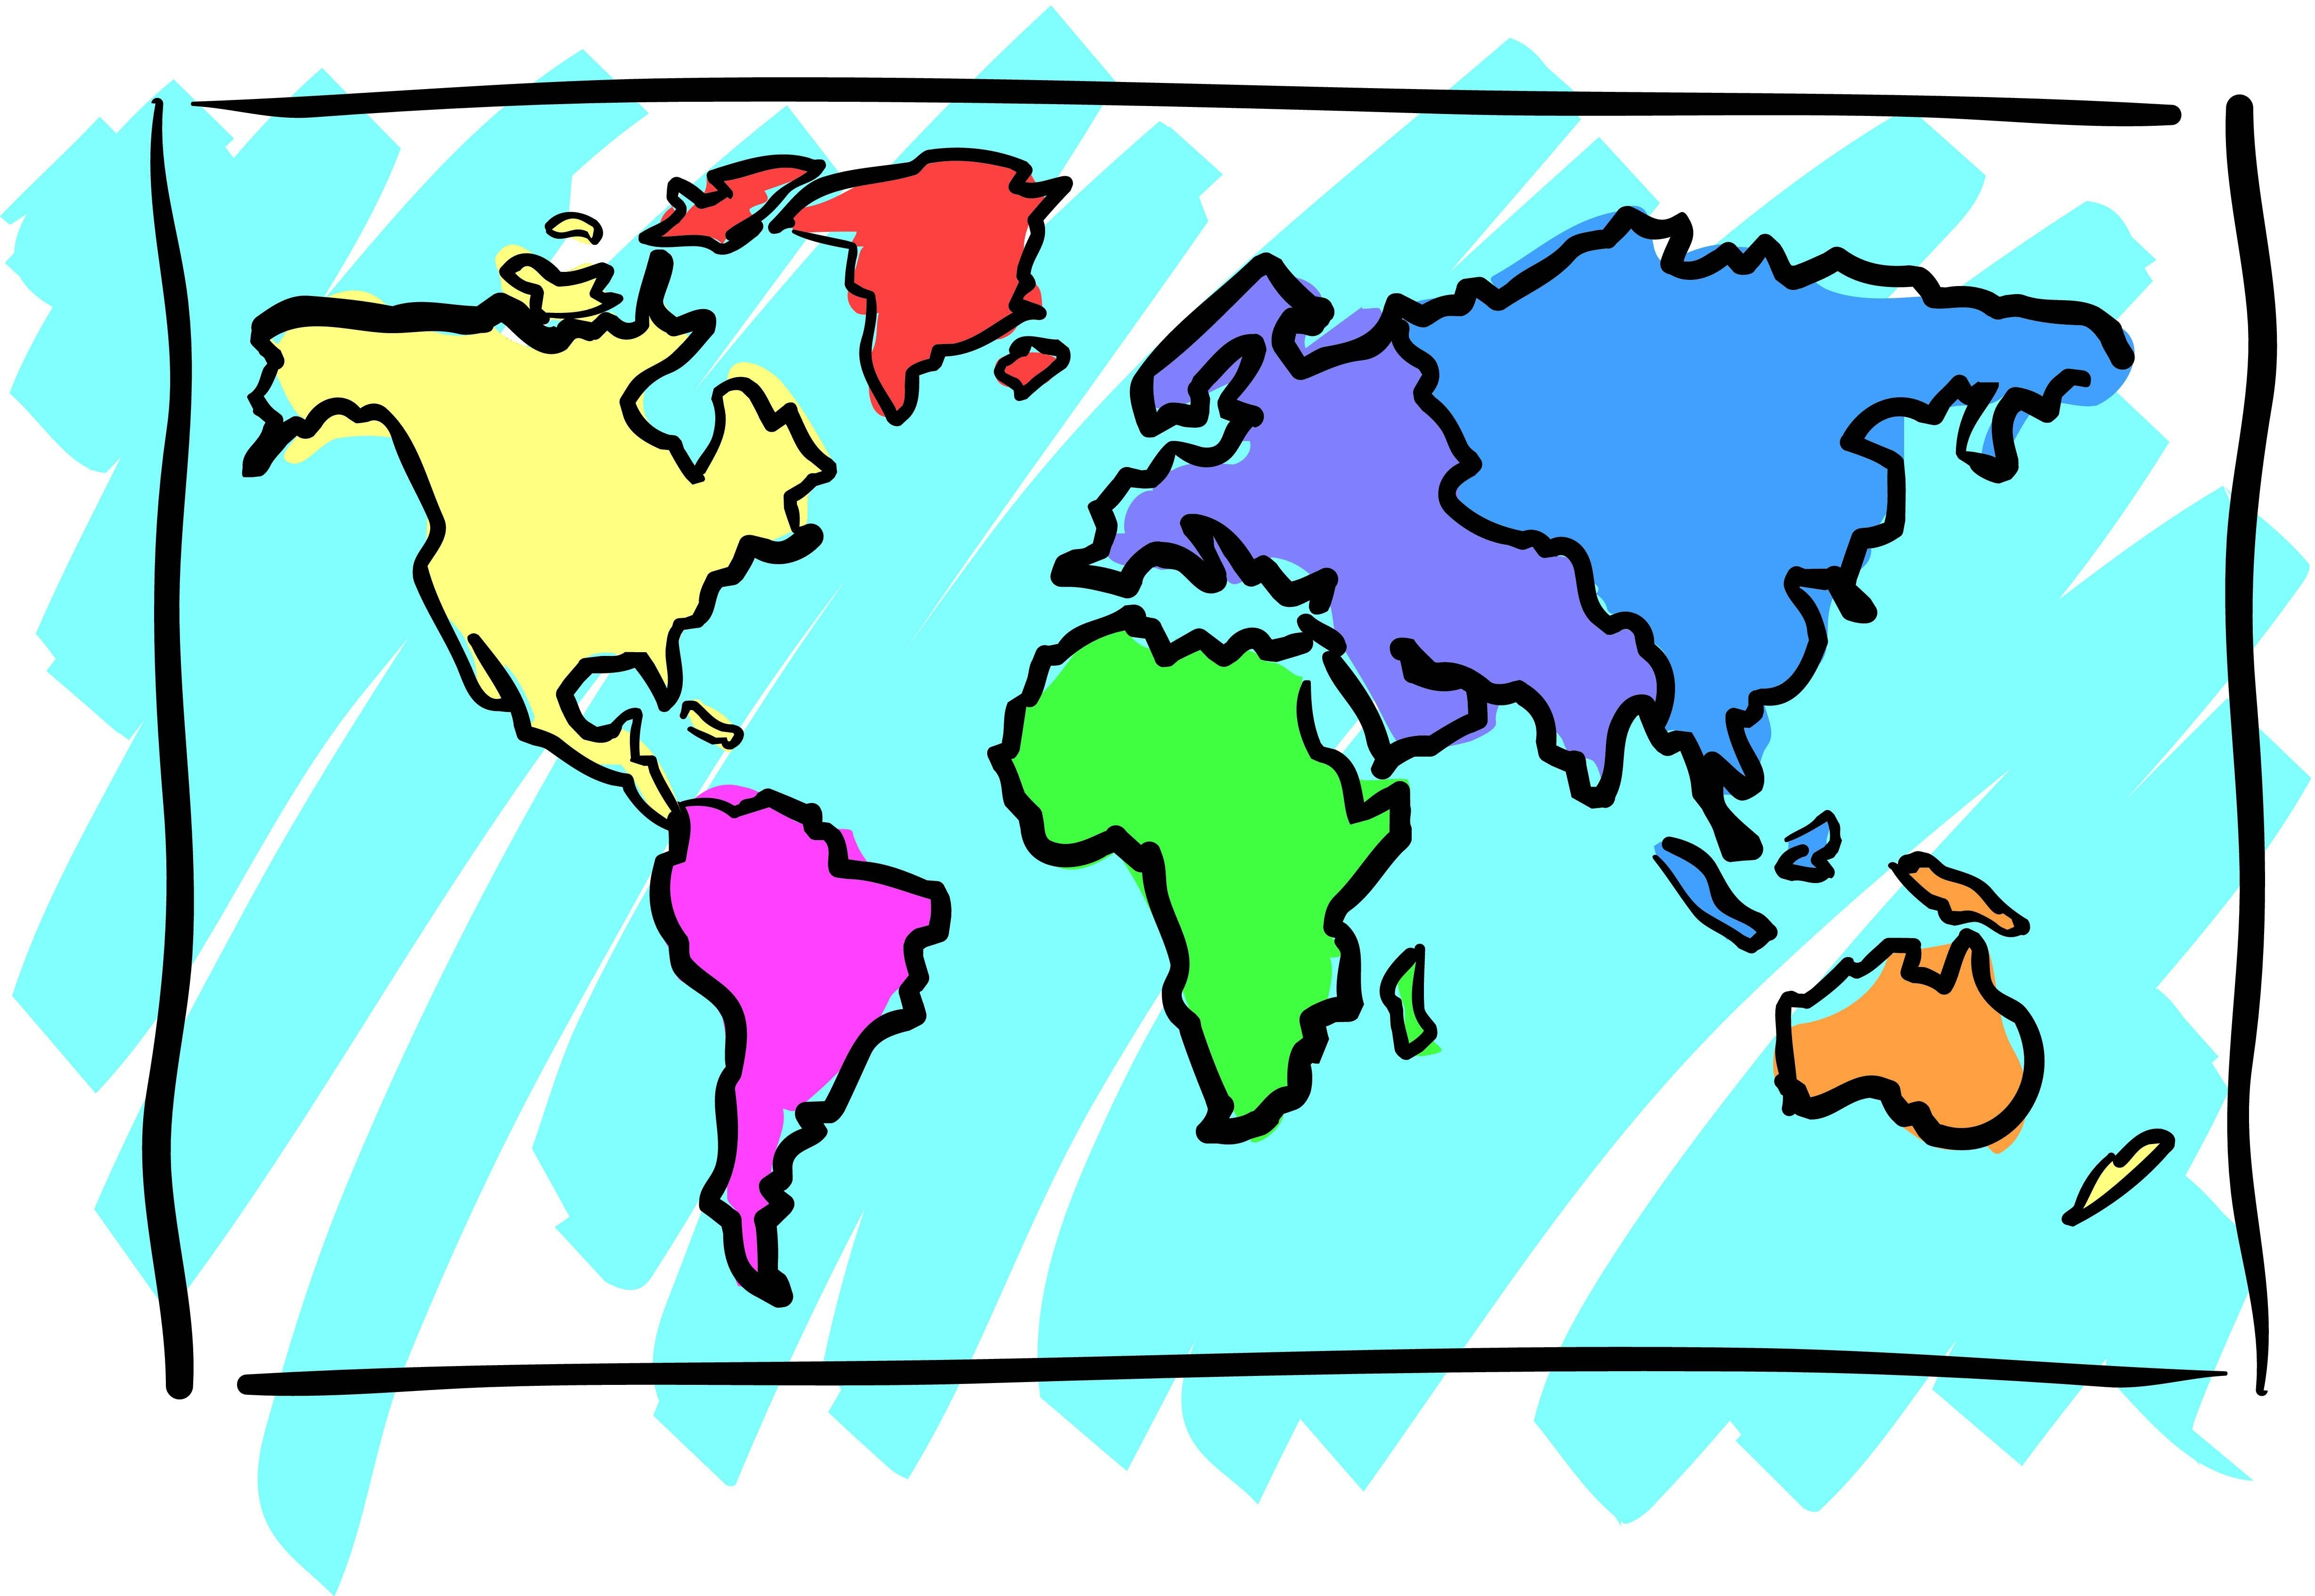 Free World Map Clip Art Images New World Map Clipart Free Download New Map  Clipart Free Clip Art